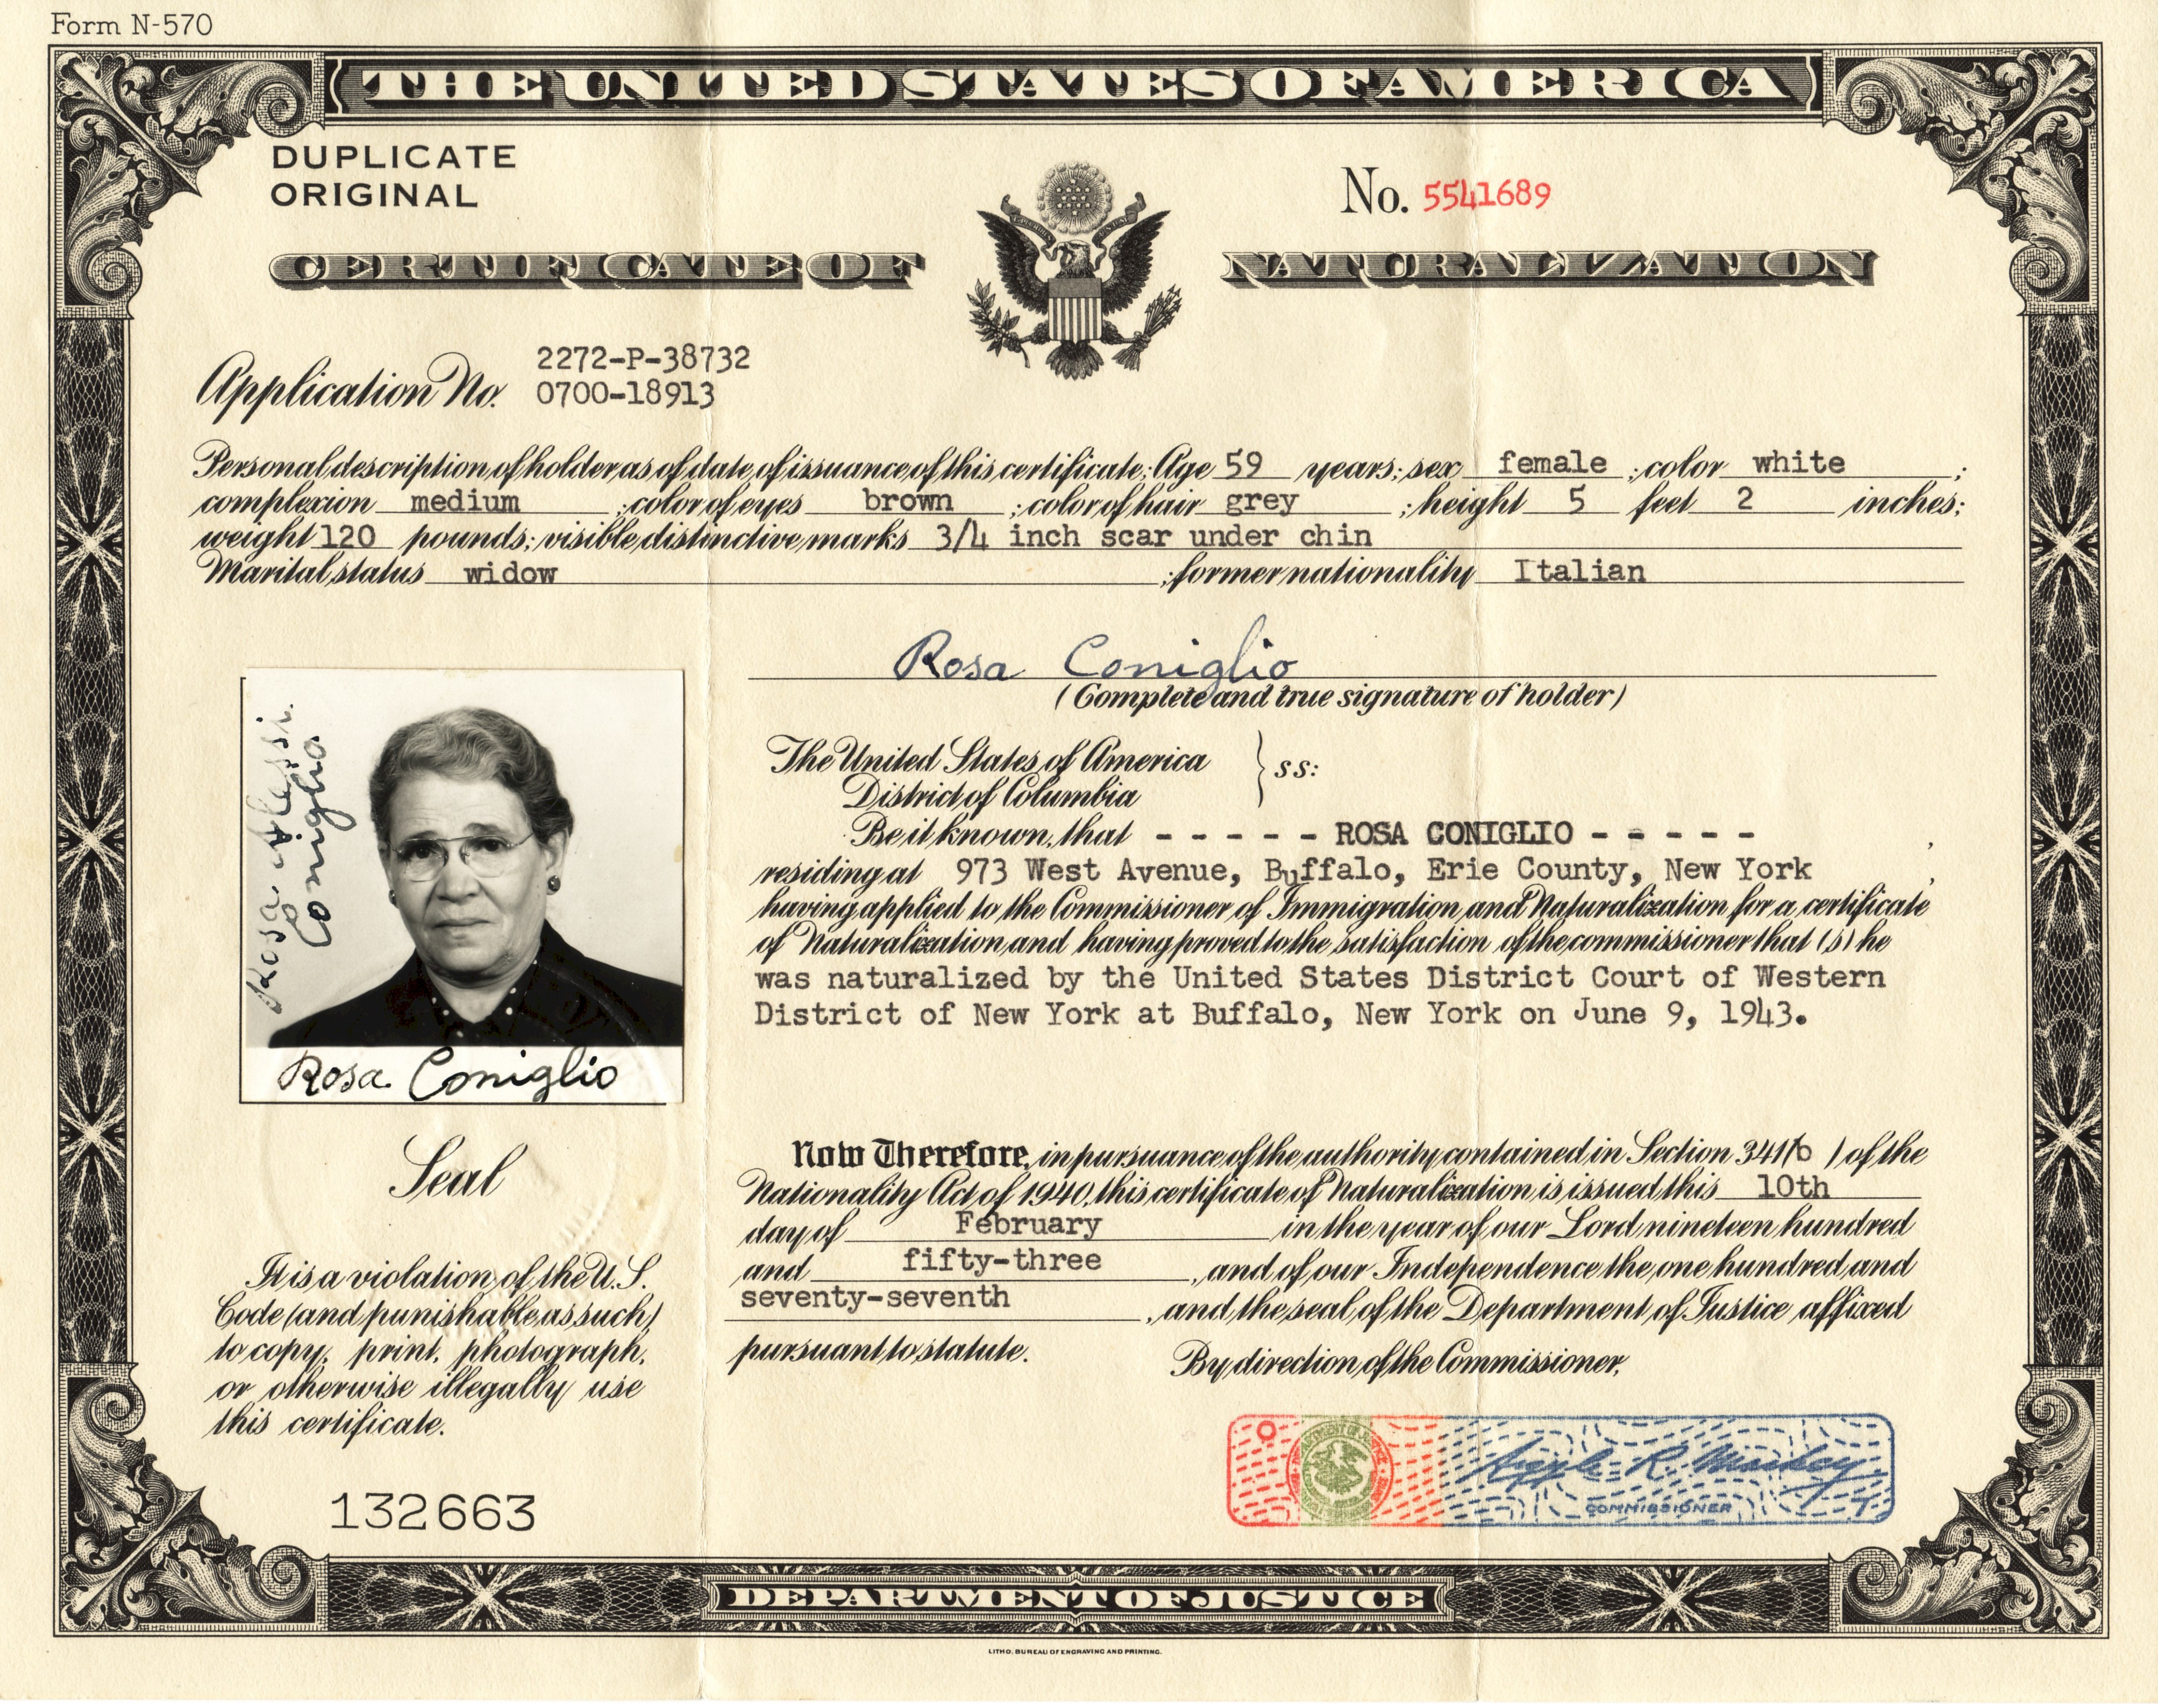 Similiar Which Is The Certificate Of Naturalization Certificate